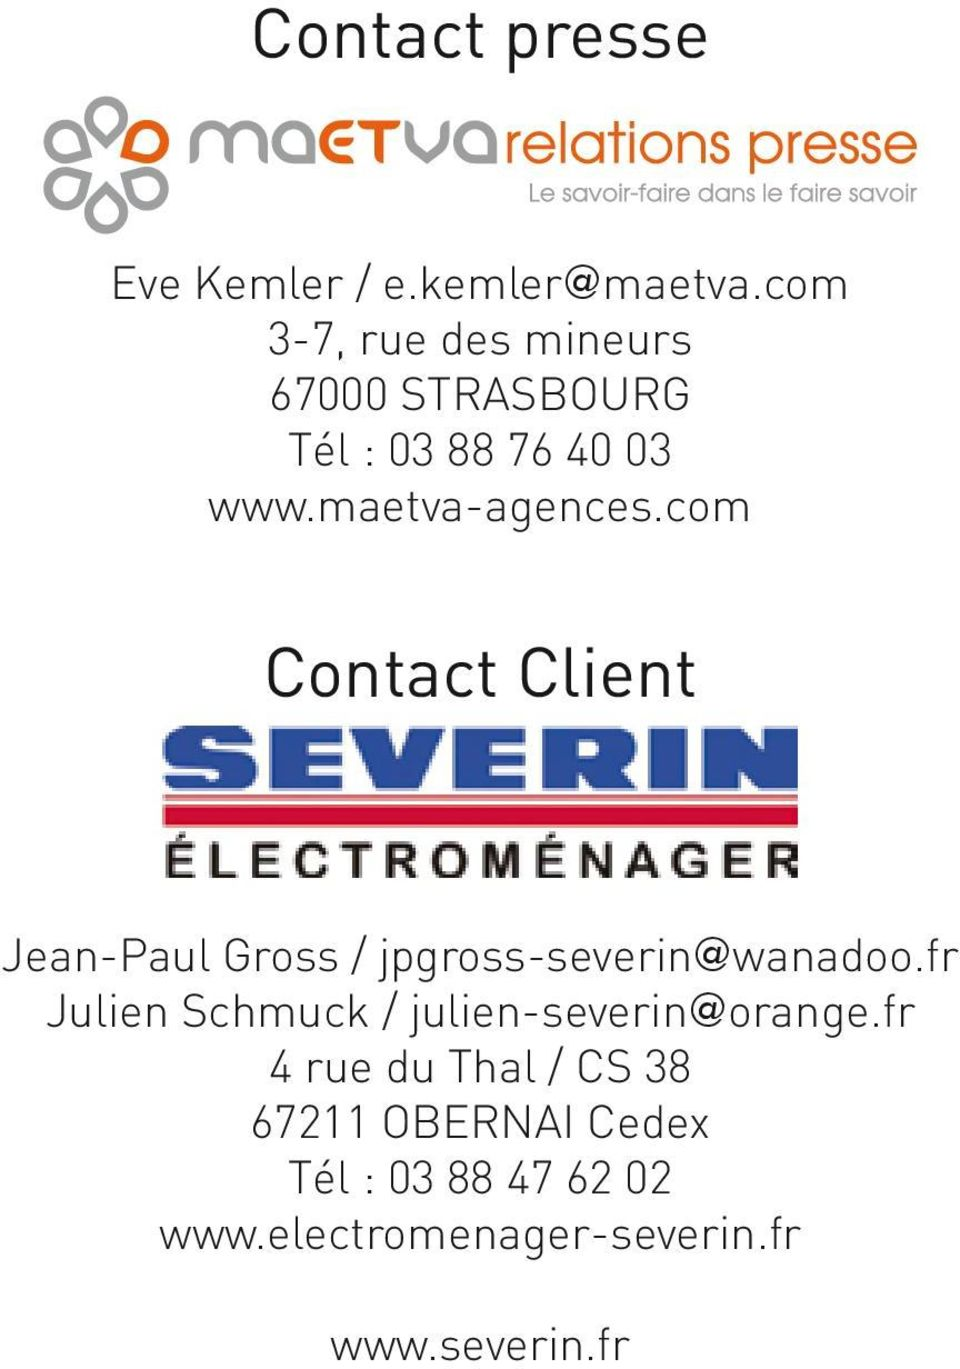 com Contact Client Jean-Paul Gross / jpgross-severin@wanadoo.